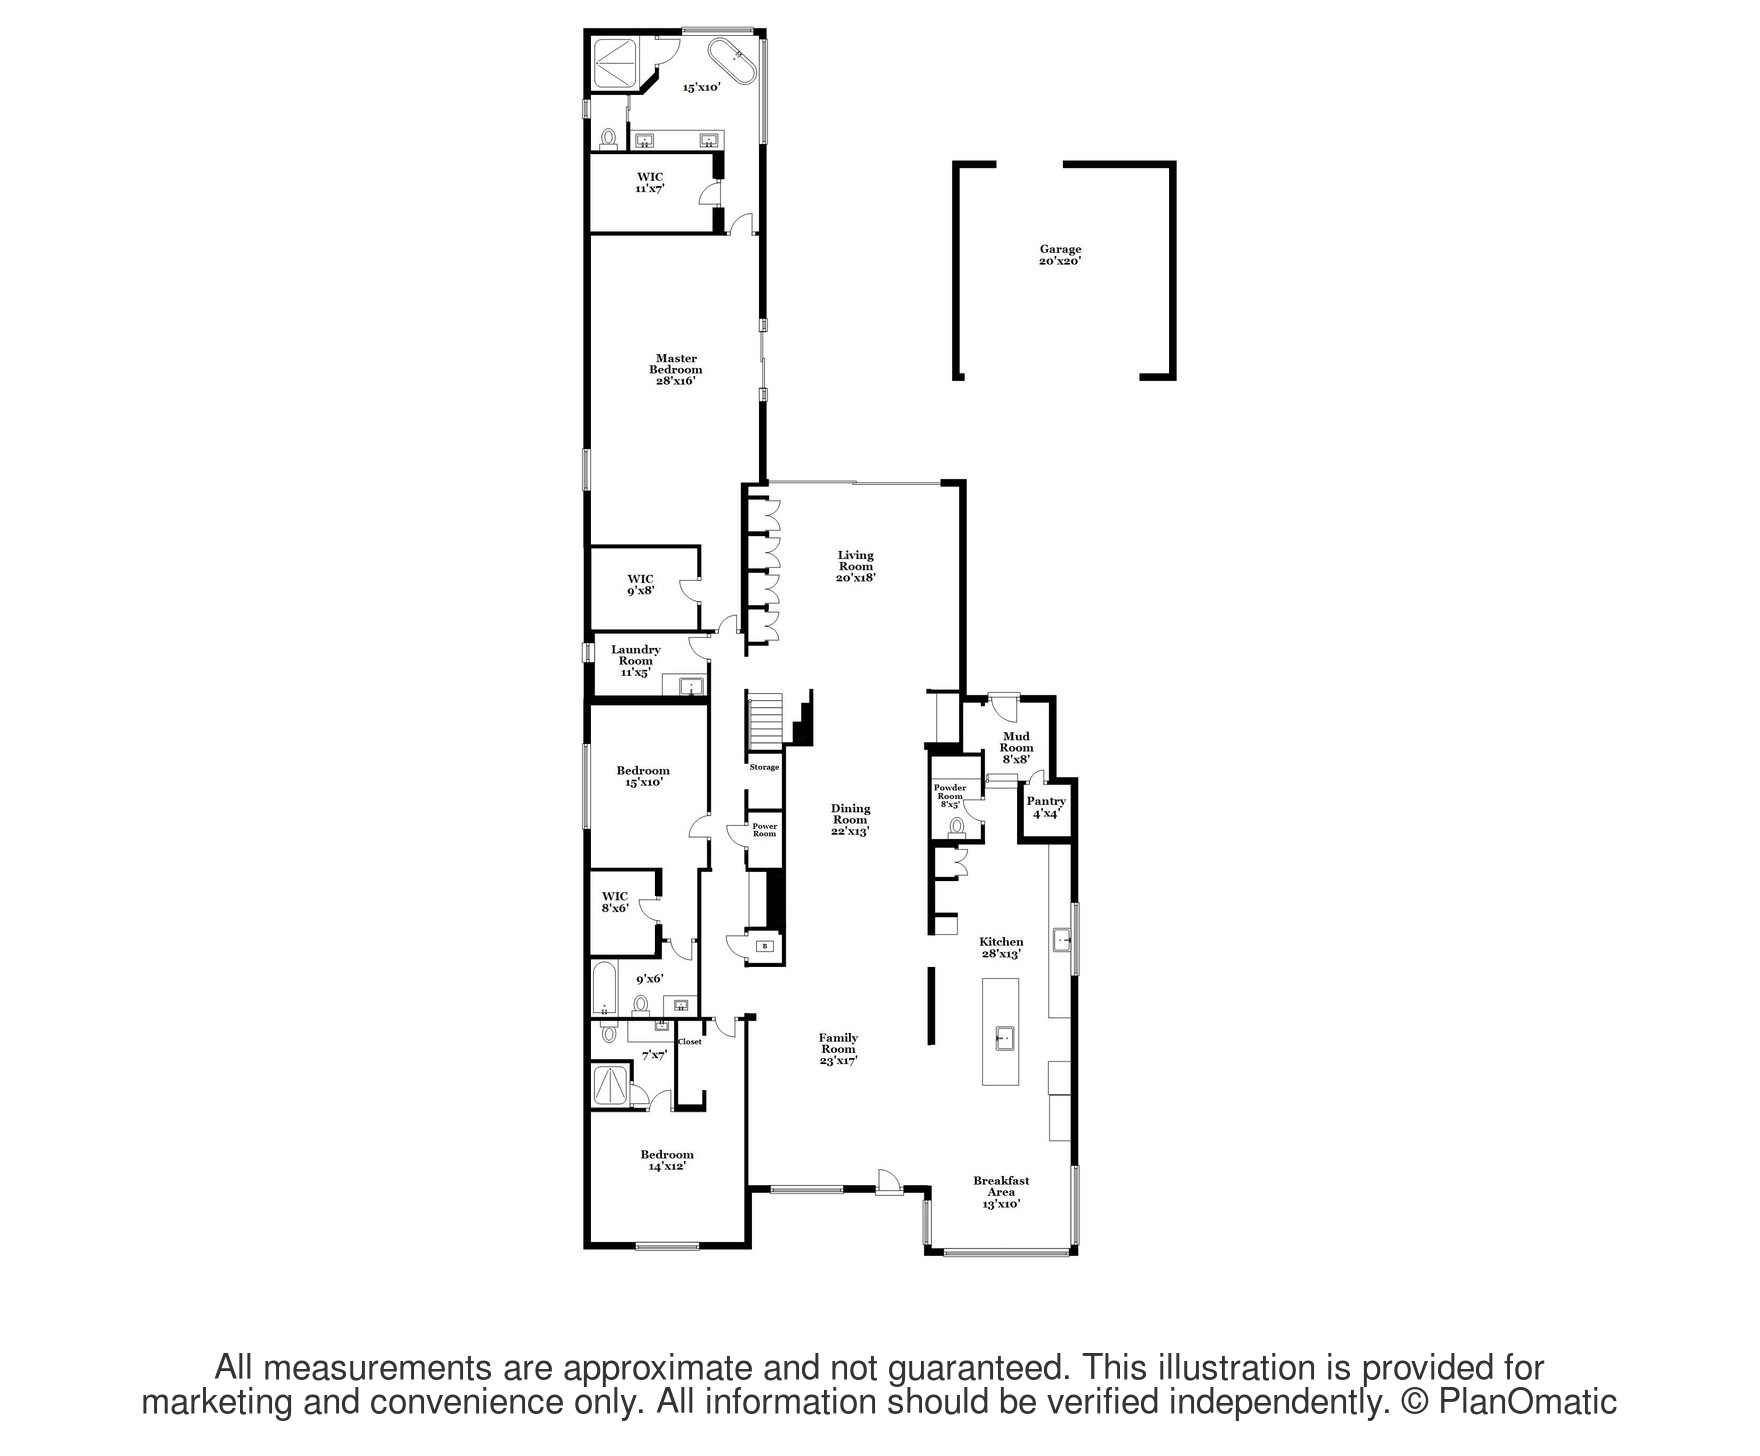 2721-Club-Drive-Los-Angeles-CA-90064-Floor-Plans-1st-Floor-From-Paris-To-LA-Real-Estate-Services